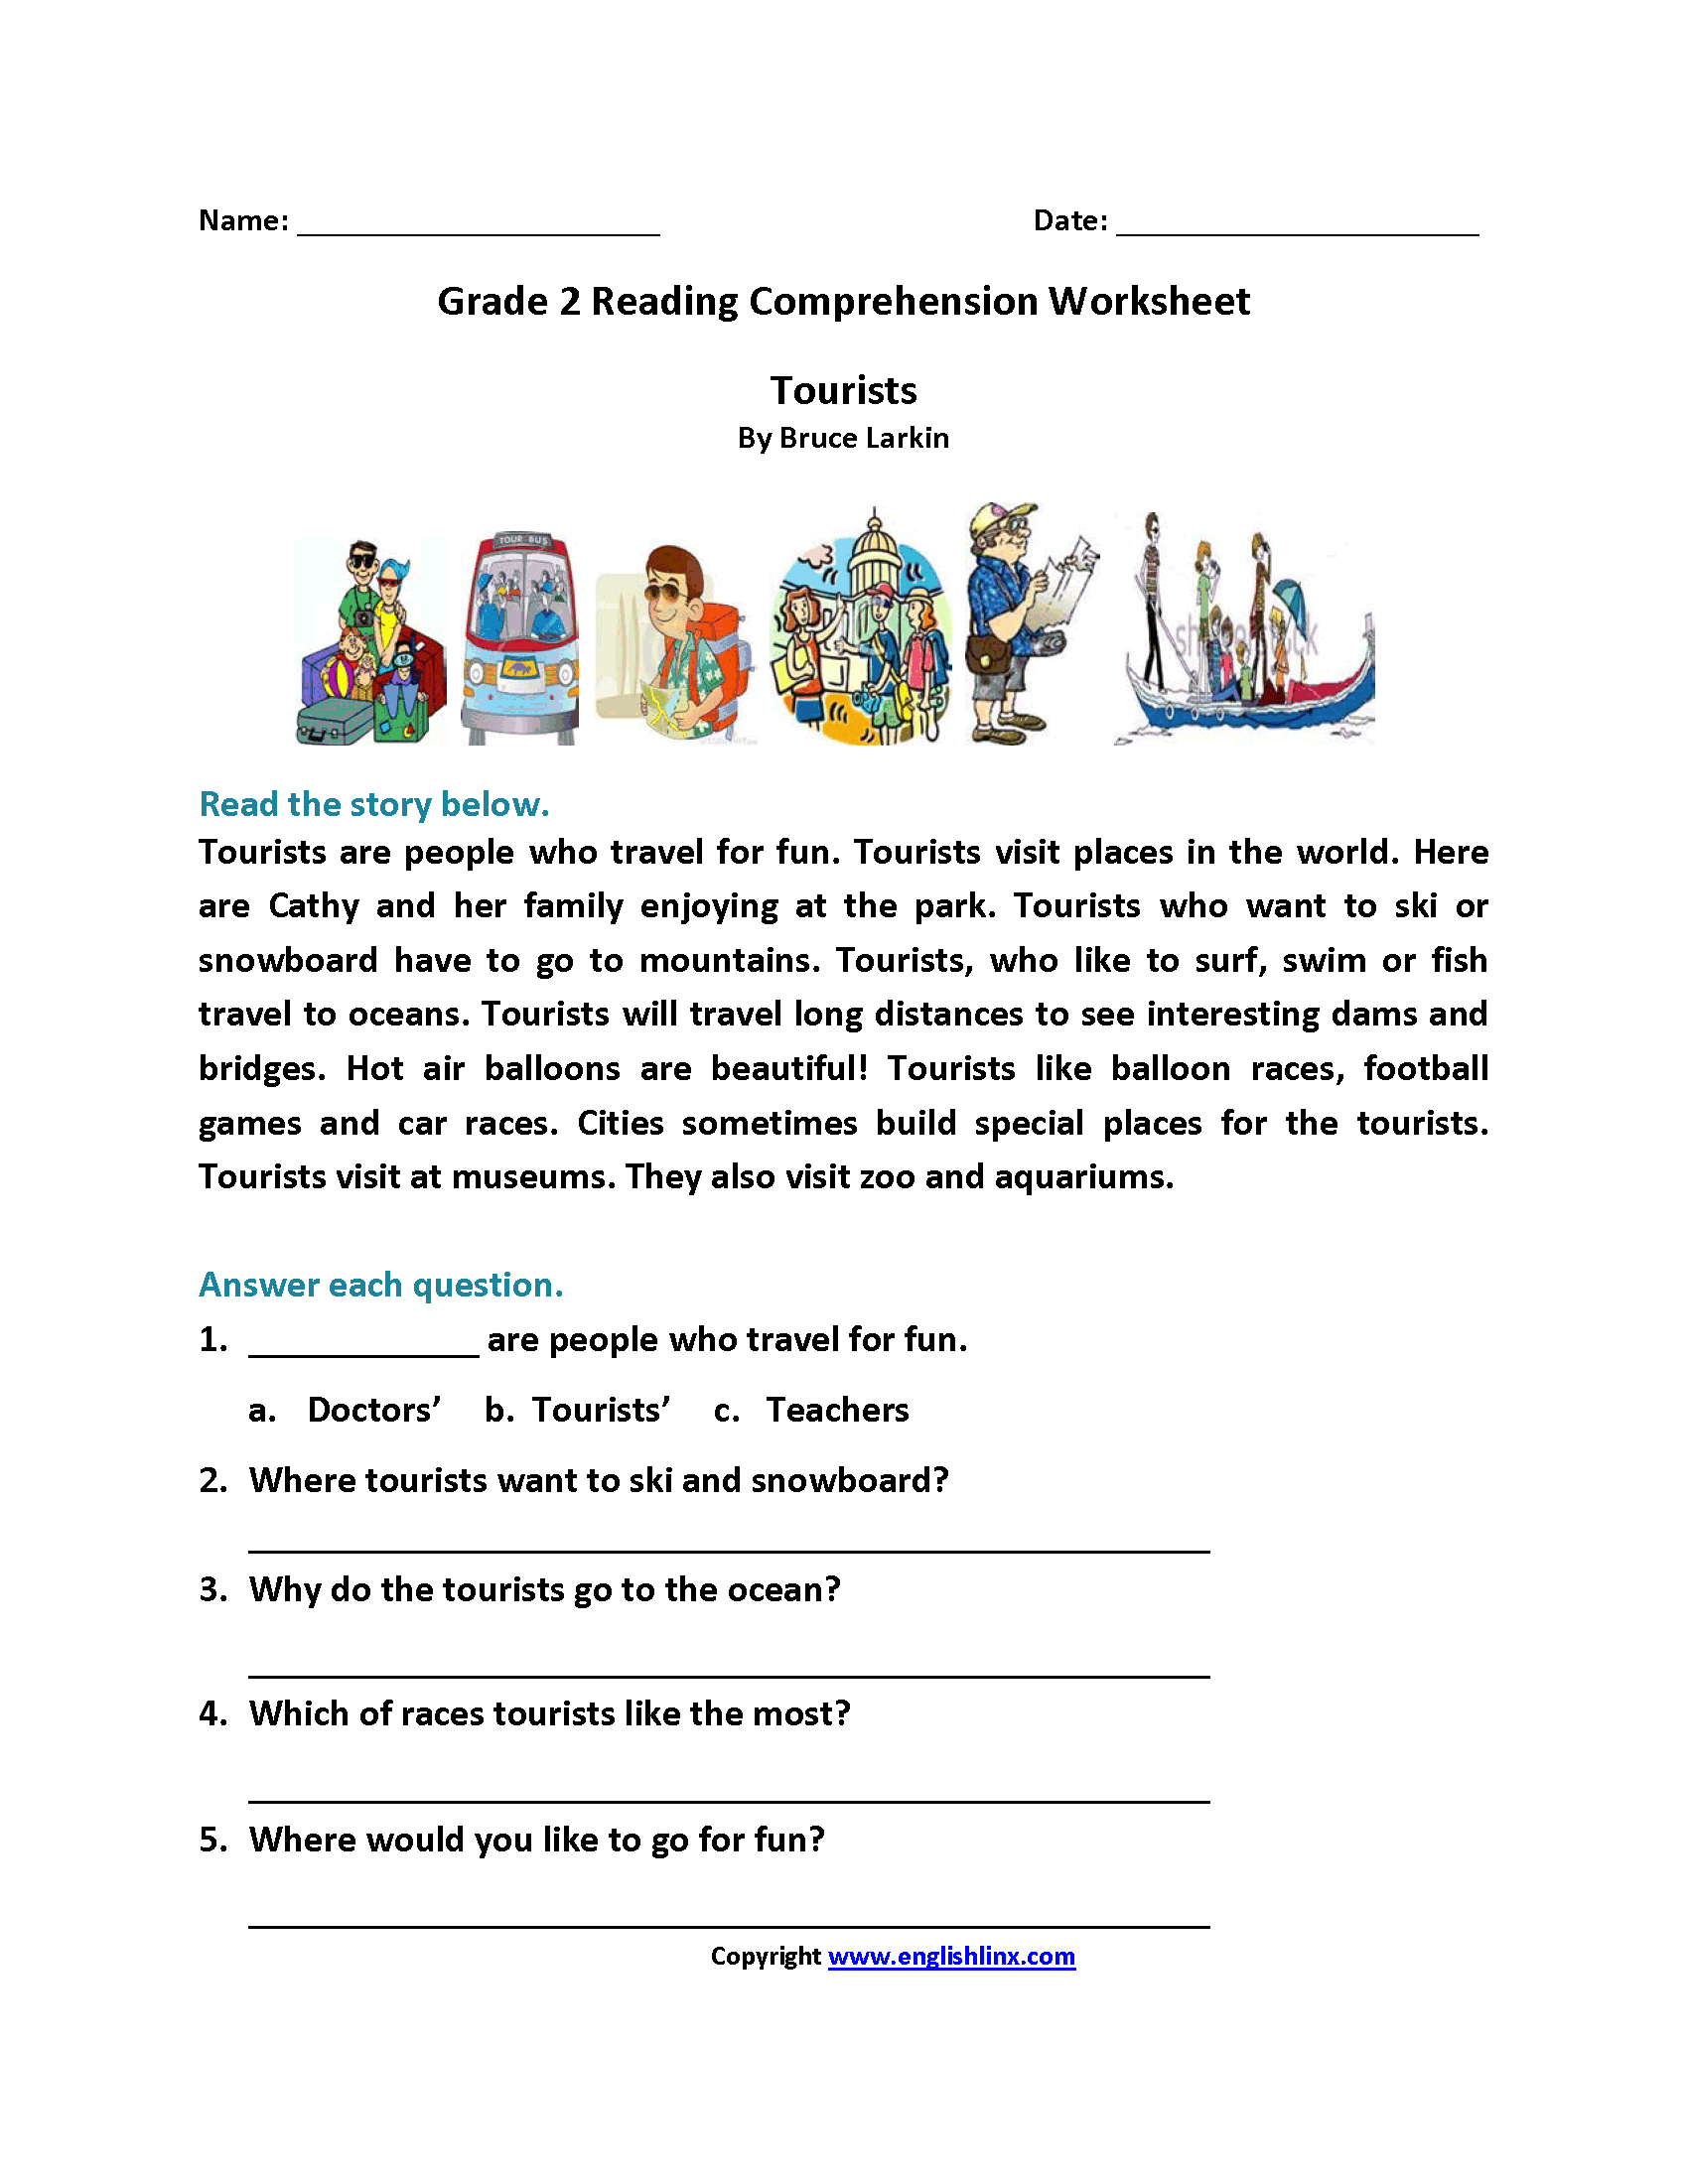 https://cute766.info/english-language-test-for-the-2nd-grade-worksheet-free-esl-printable-worksheets-made-by-teachers/ [ 91 x 2200 Pixel ]